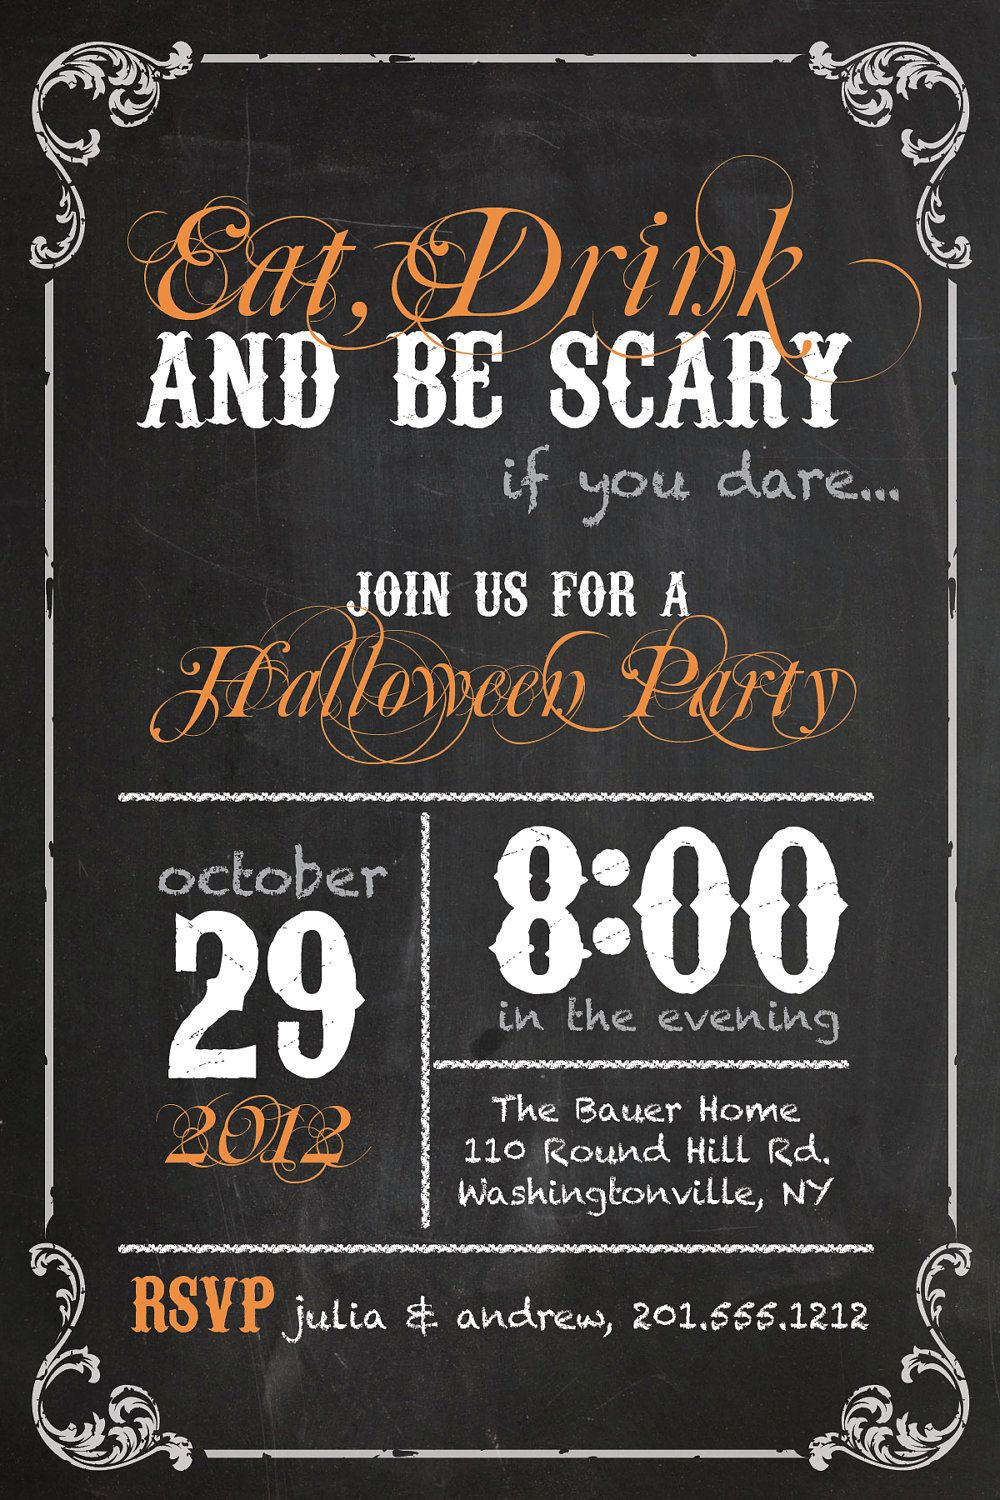 Halloween Party Invite Scary Halloween Party Invitations Printable Halloween Party Invitations Birthday Halloween Party